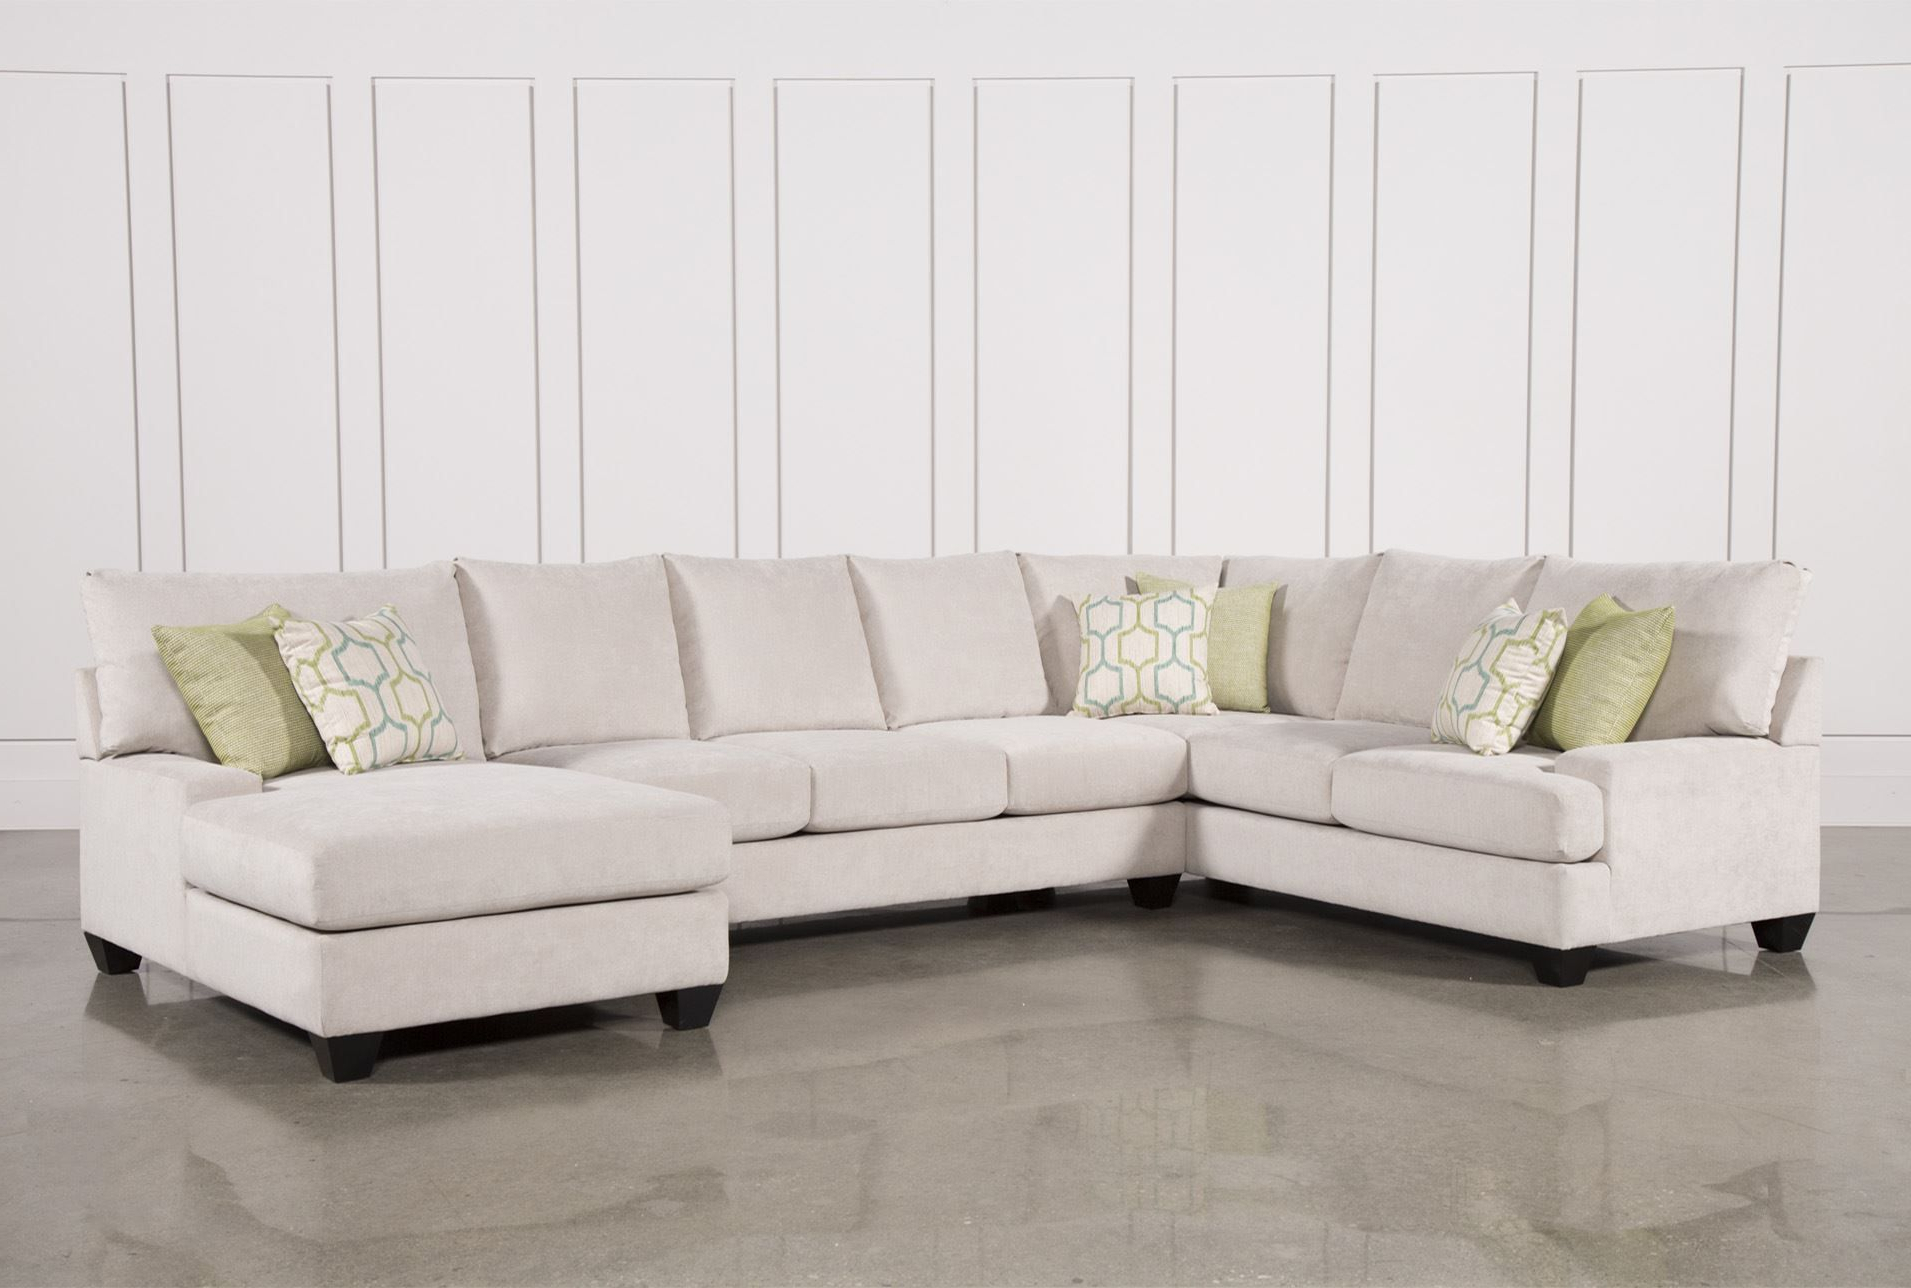 Sierra Foam Ii 3 Piece Sectionals With Regard To Trendy Harper Foam 3 Piece Sectional W/raf Chaise –  (View 17 of 20)